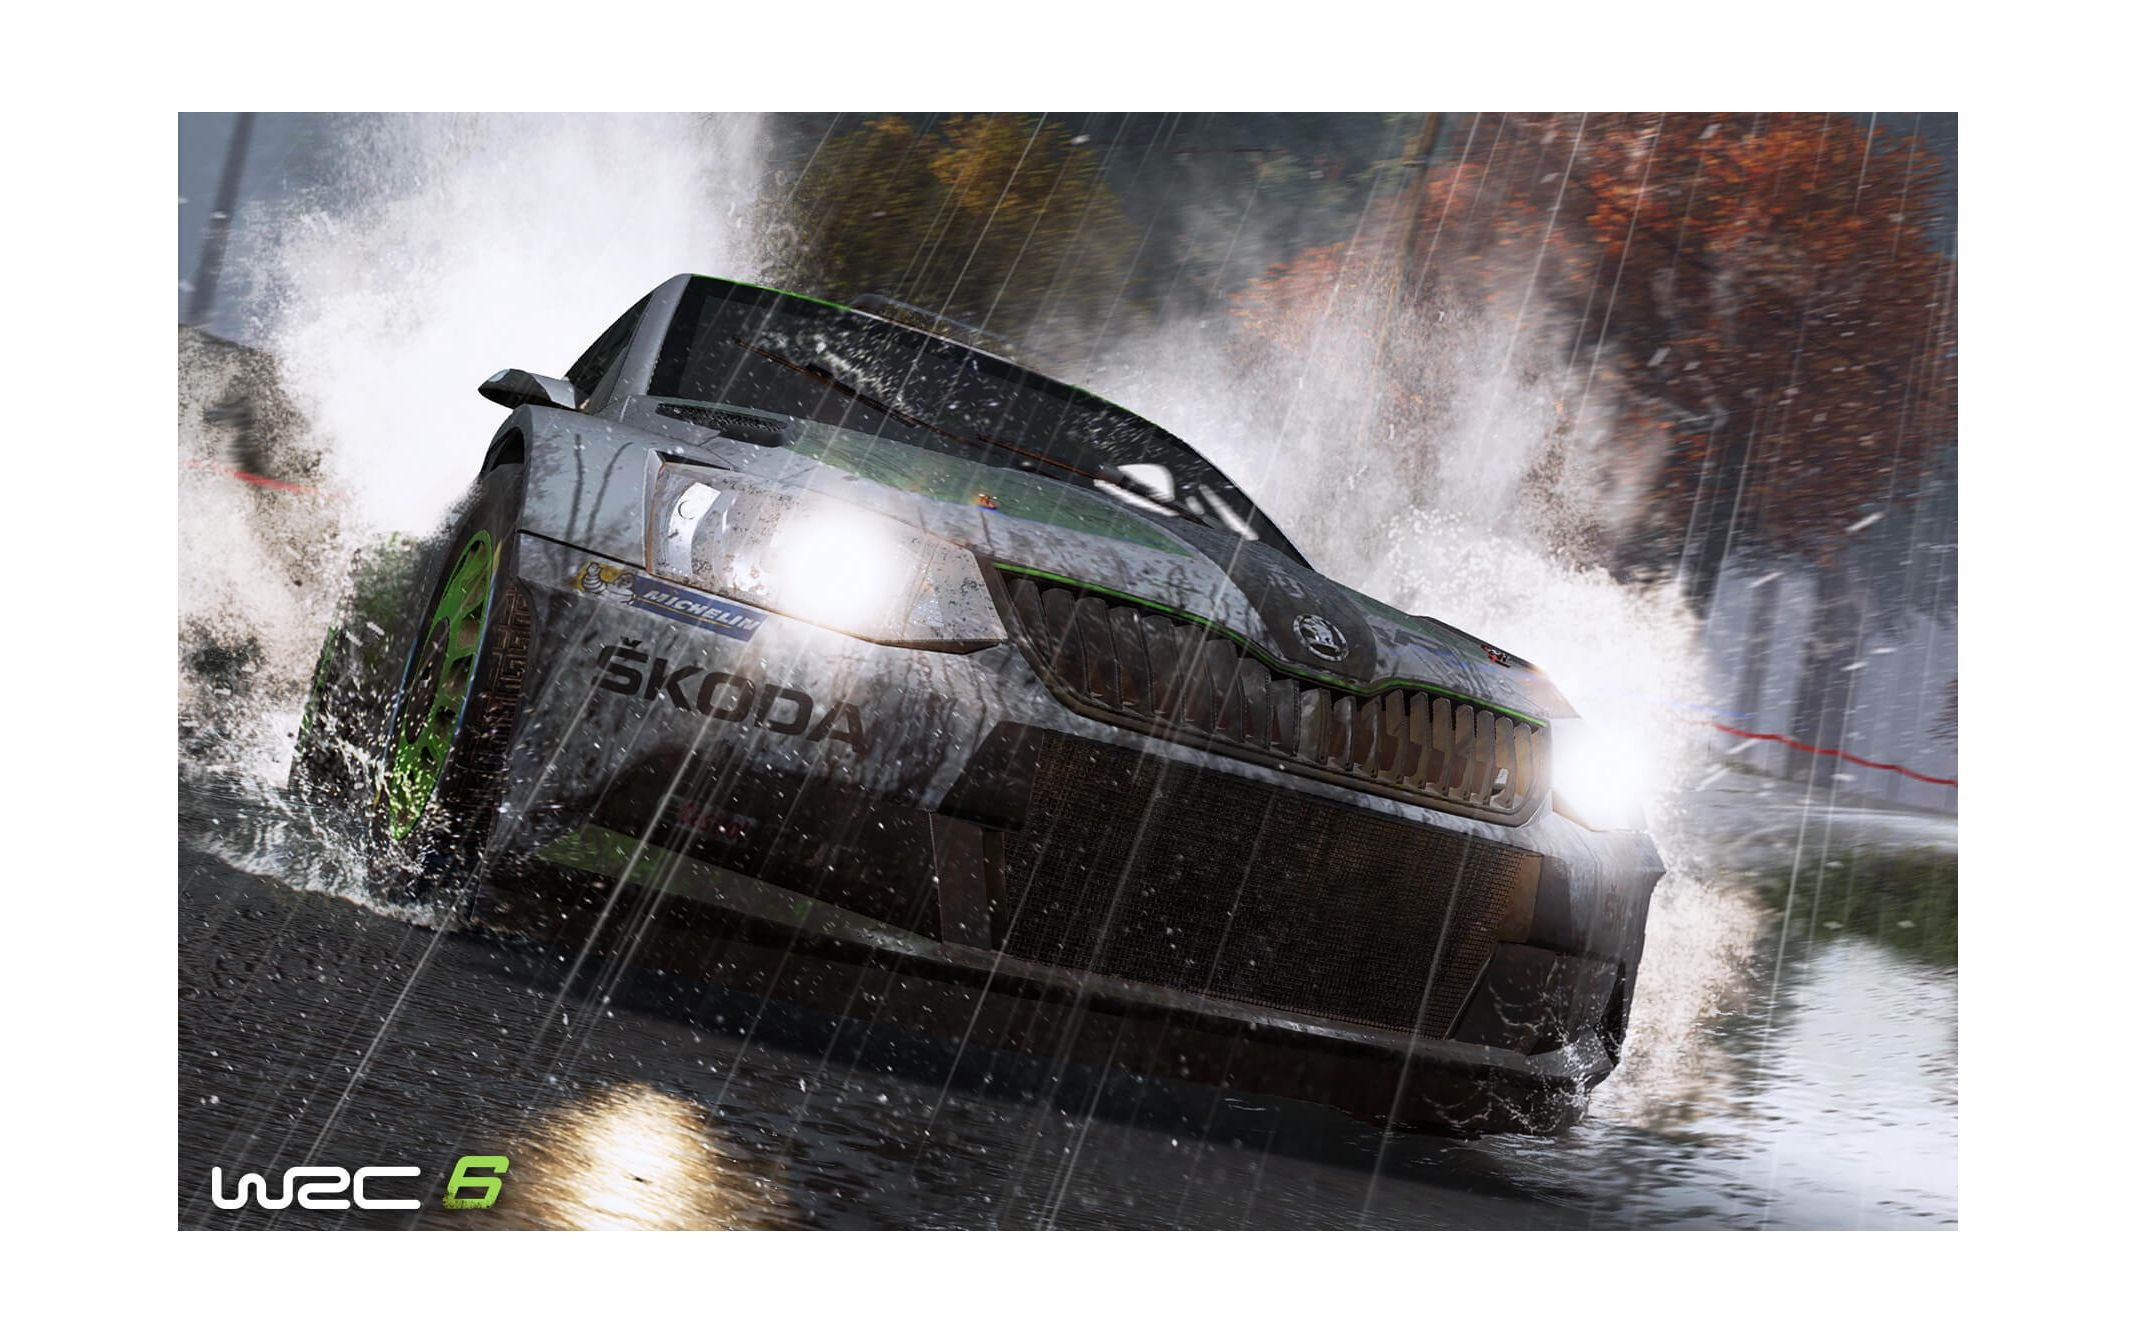 wrc world rally championship 6 ps4 game xcite. Black Bedroom Furniture Sets. Home Design Ideas